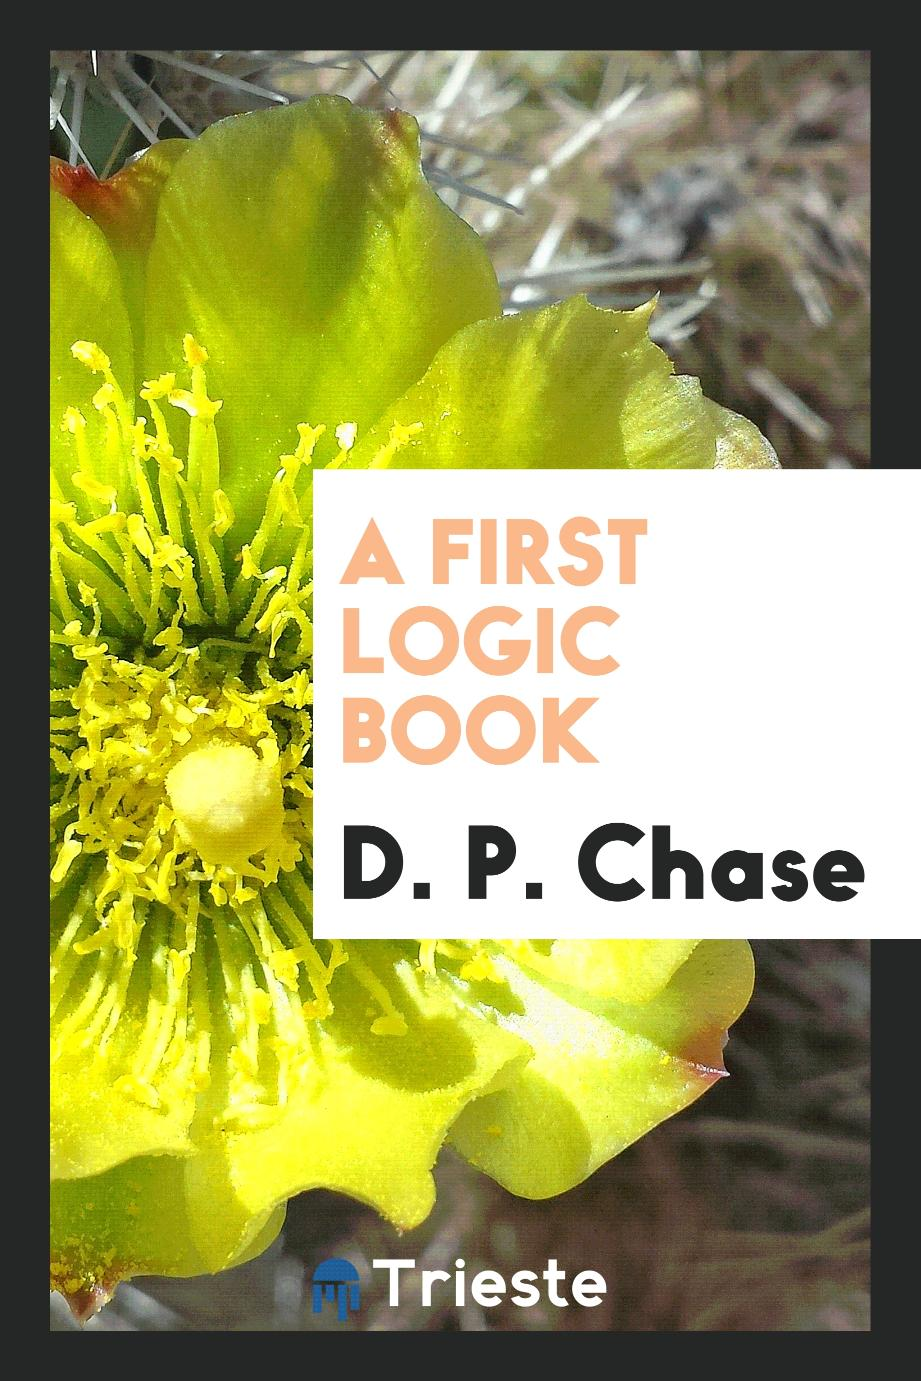 D. P. Chase - A First Logic Book